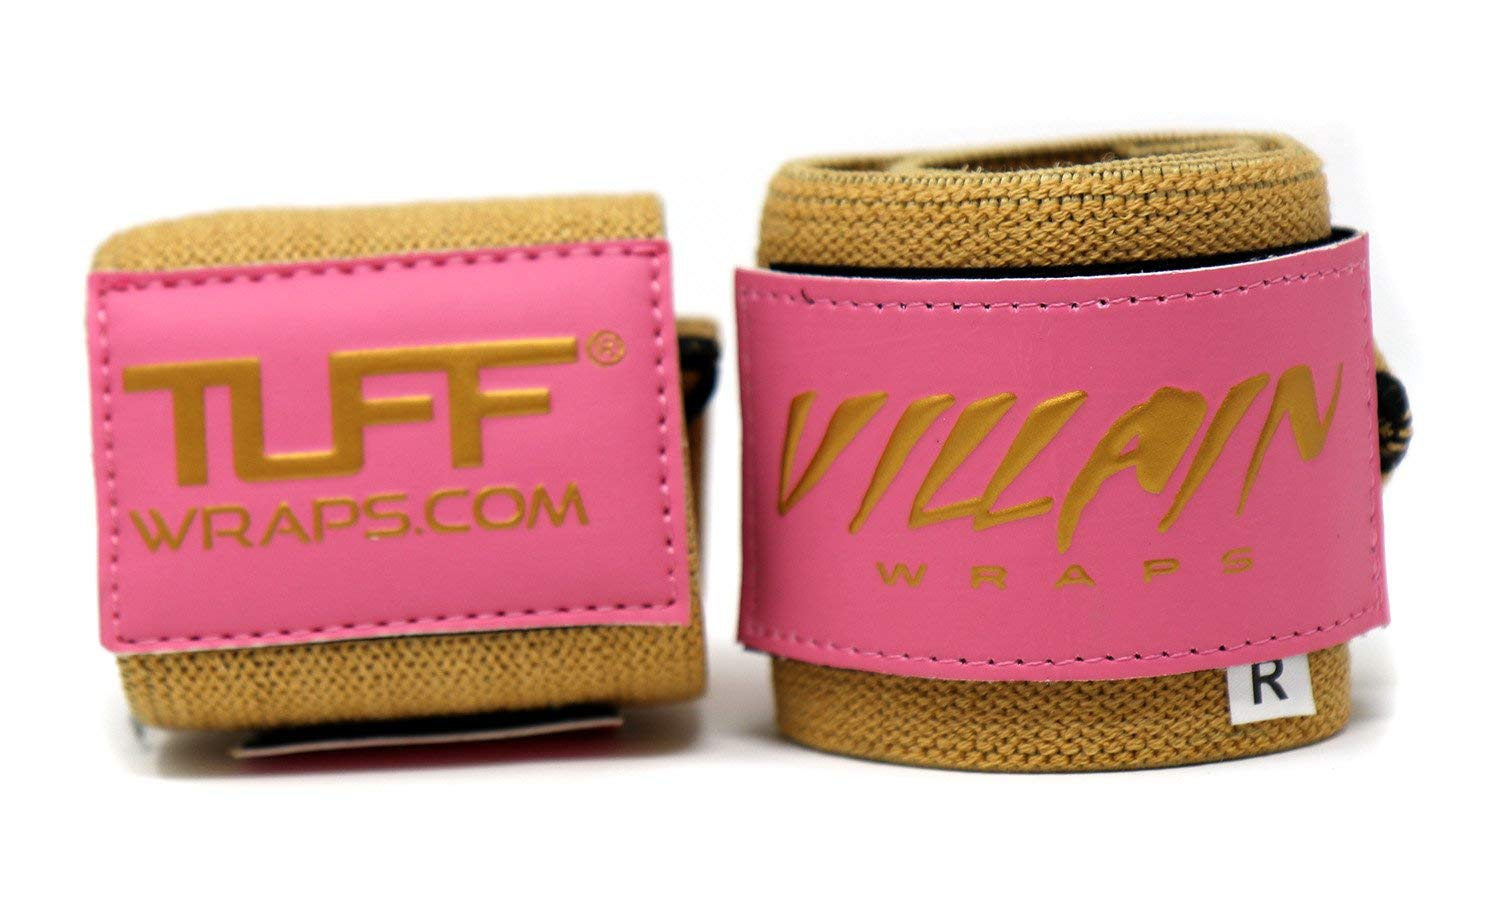 Villain Wrist Wraps 16'' for Powerlifting, Weightlifting, Strongman Training, Crossfit - Never Fuss with Thumb Loops Again - 30 Day Guarantee - (Pink & Gold, 16 Inches)